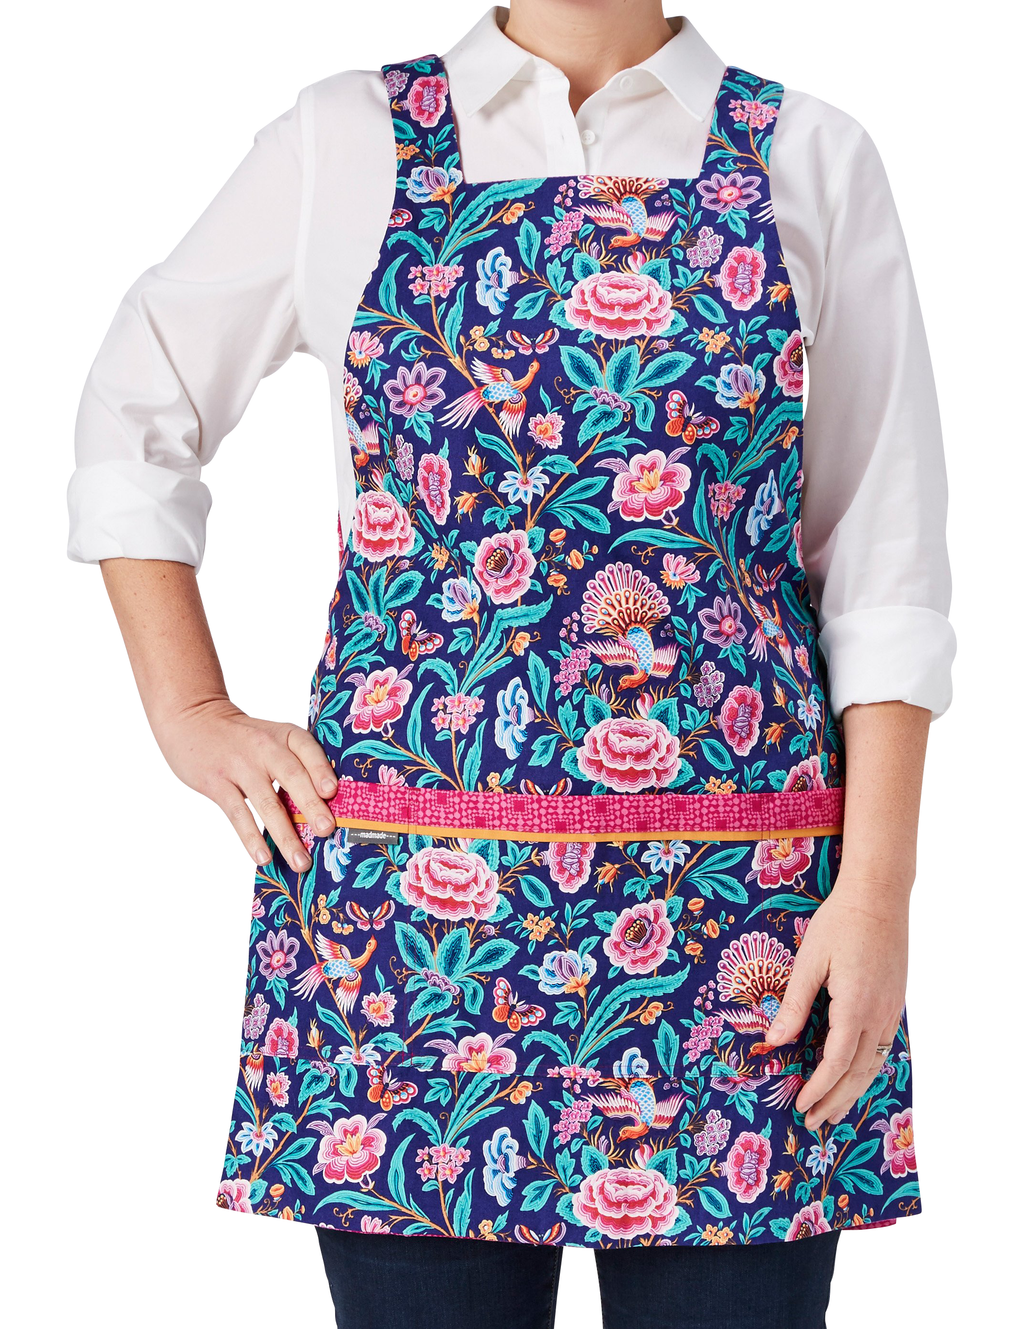 A pretty fashion apron in a birds and flowers print in bright blue and hot pink reversing to a hot pink geo print, birds and flowers print side, front view.